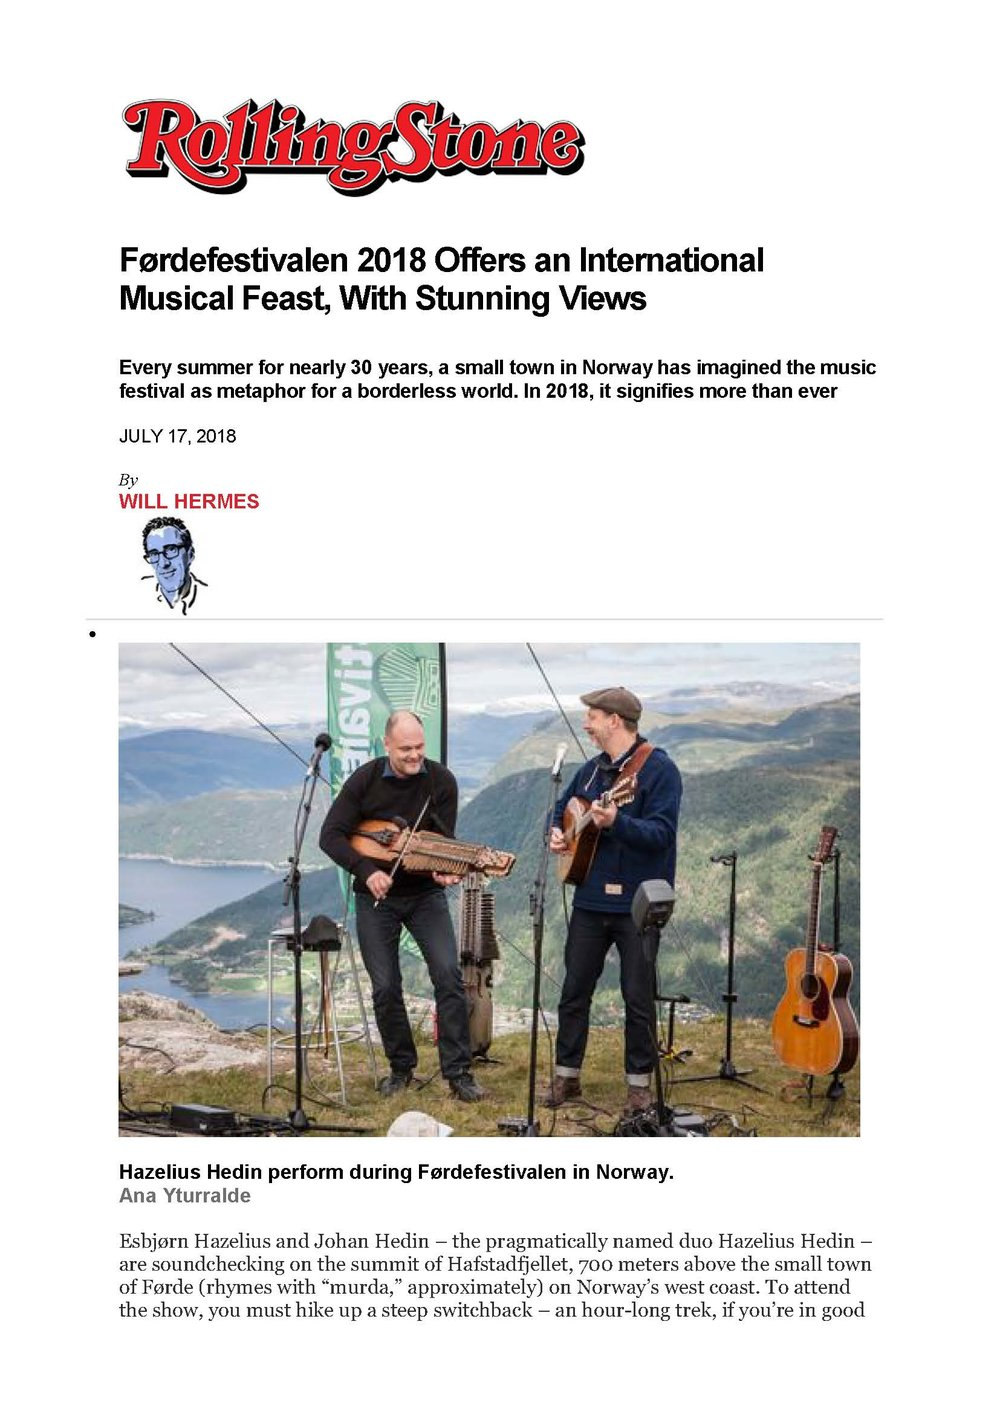 Rolling Stone - Førdefestivalen 2018 Offers an International Musical Feast_Side_1.jpg